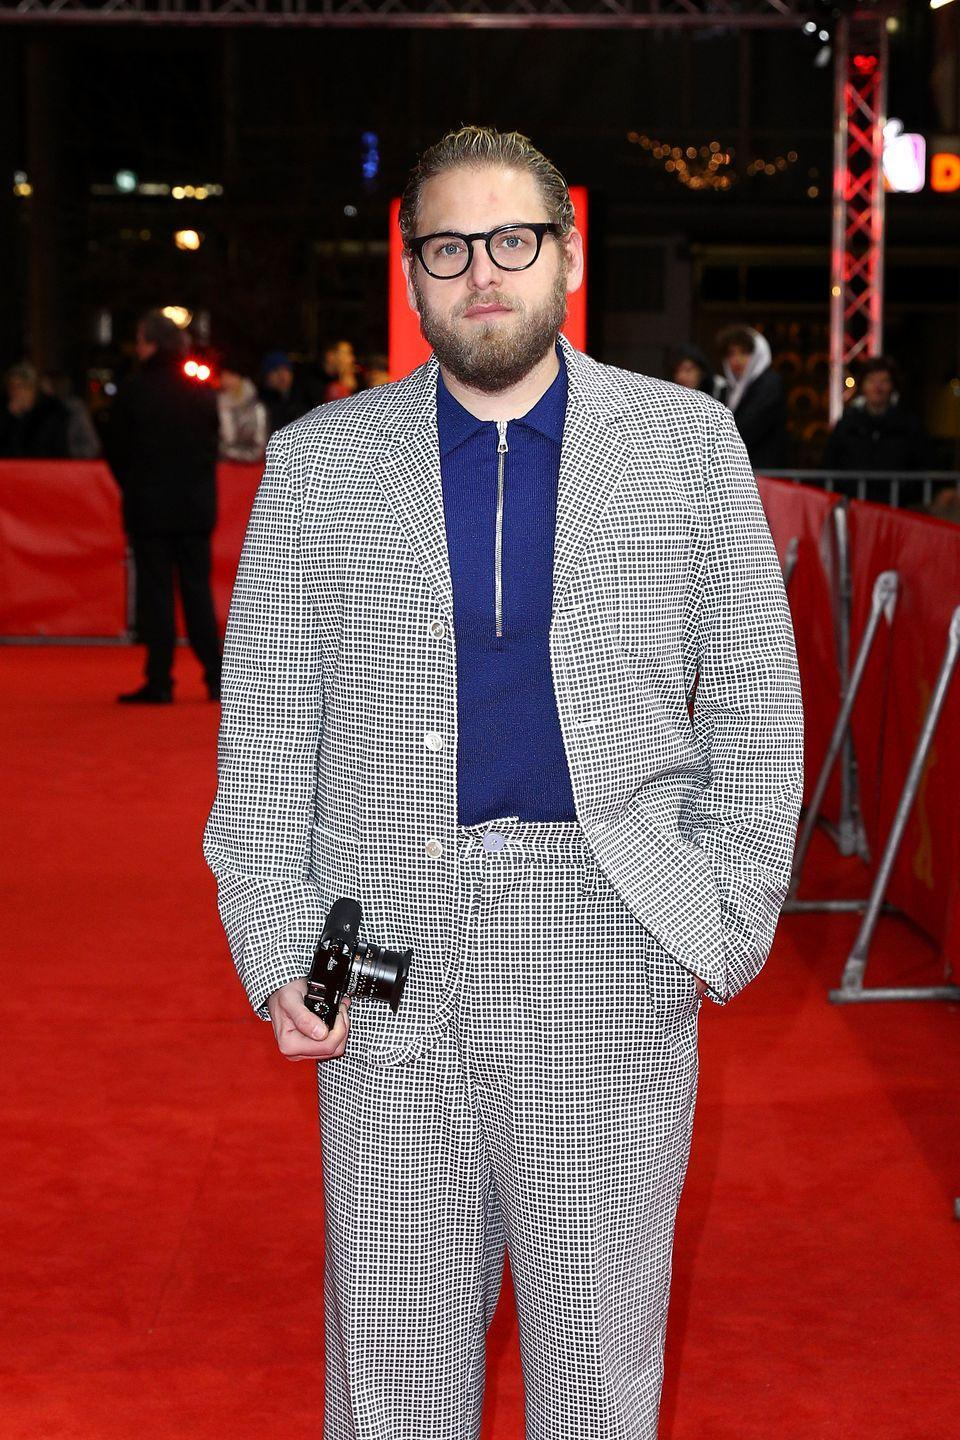 """<p>Another glasses-wearer outside of his films, and the <a href=""""https://www.menshealth.com/entertainment/a32585488/jonah-hill-most-swear-words/"""" rel=""""nofollow noopener"""" target=""""_blank"""" data-ylk=""""slk:actor"""" class=""""link rapid-noclick-resp"""">actor</a> looks awesome in a simple pair when paired with a patterned ensemble. </p>"""